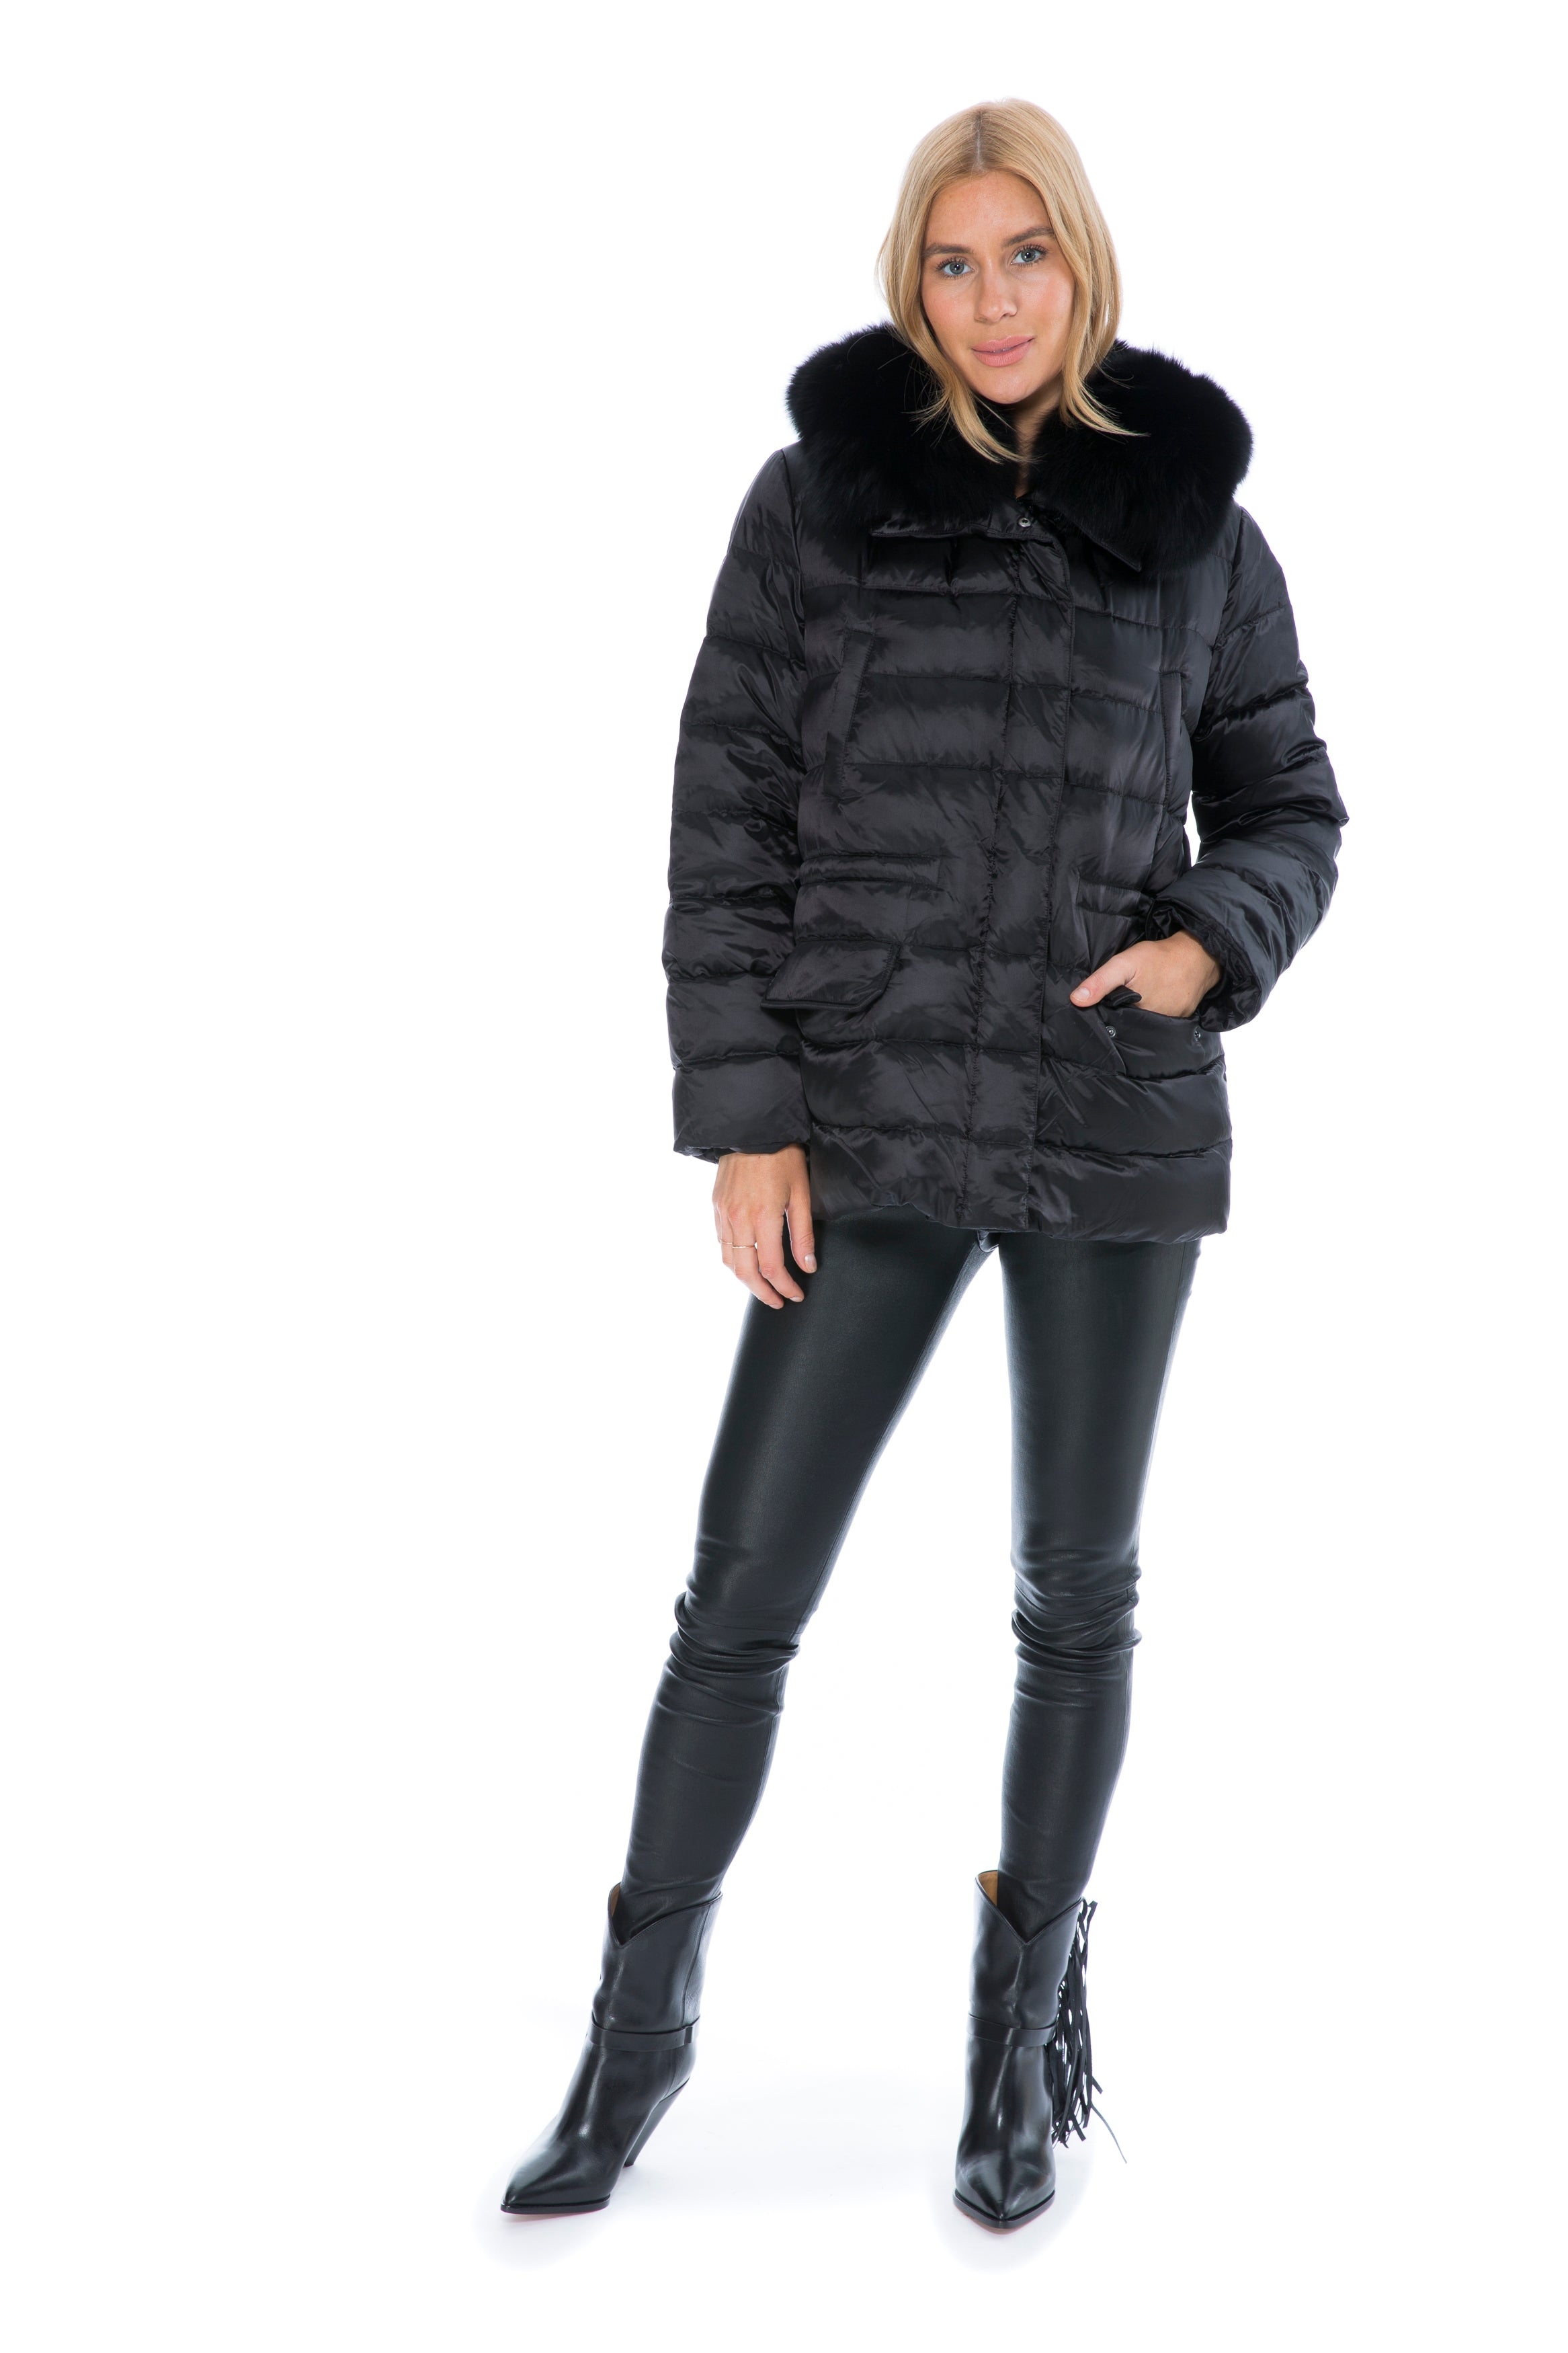 ARMY BLACK FUR LINED NYLON PARKA